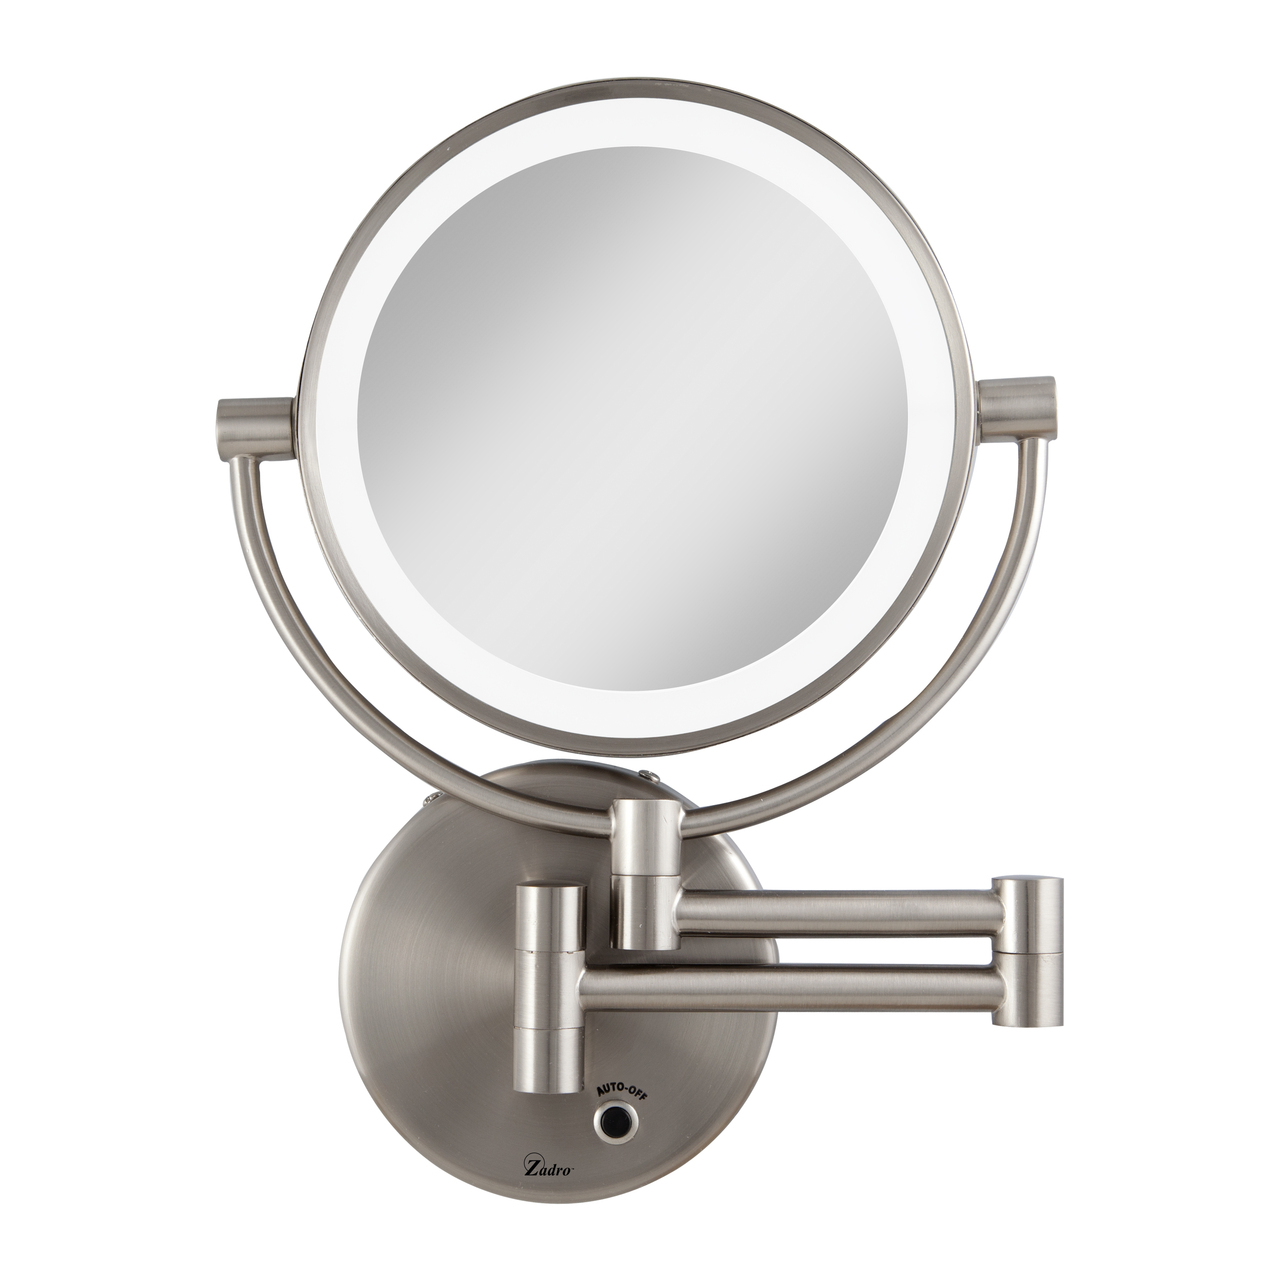 15x magnifying mirror best lighted makeup mirror lighted makeup mirror  bed bath and beyond. Lighted Magnifying Makeup Mirror Bed Bath Beyond   Mugeek Vidalondon